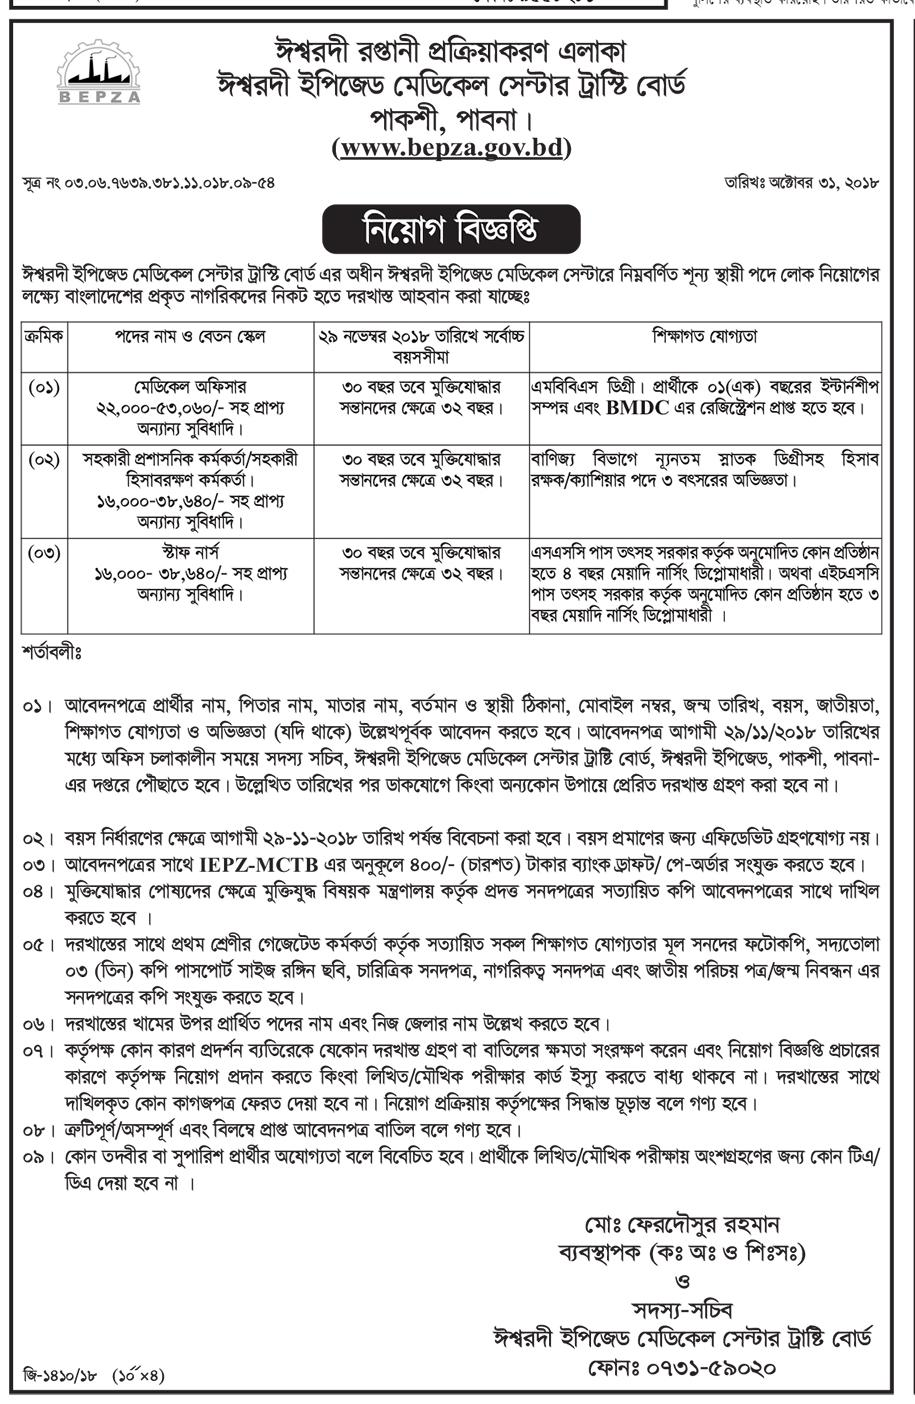 Ishwardi EPZ Medical Center Job Circular 2018